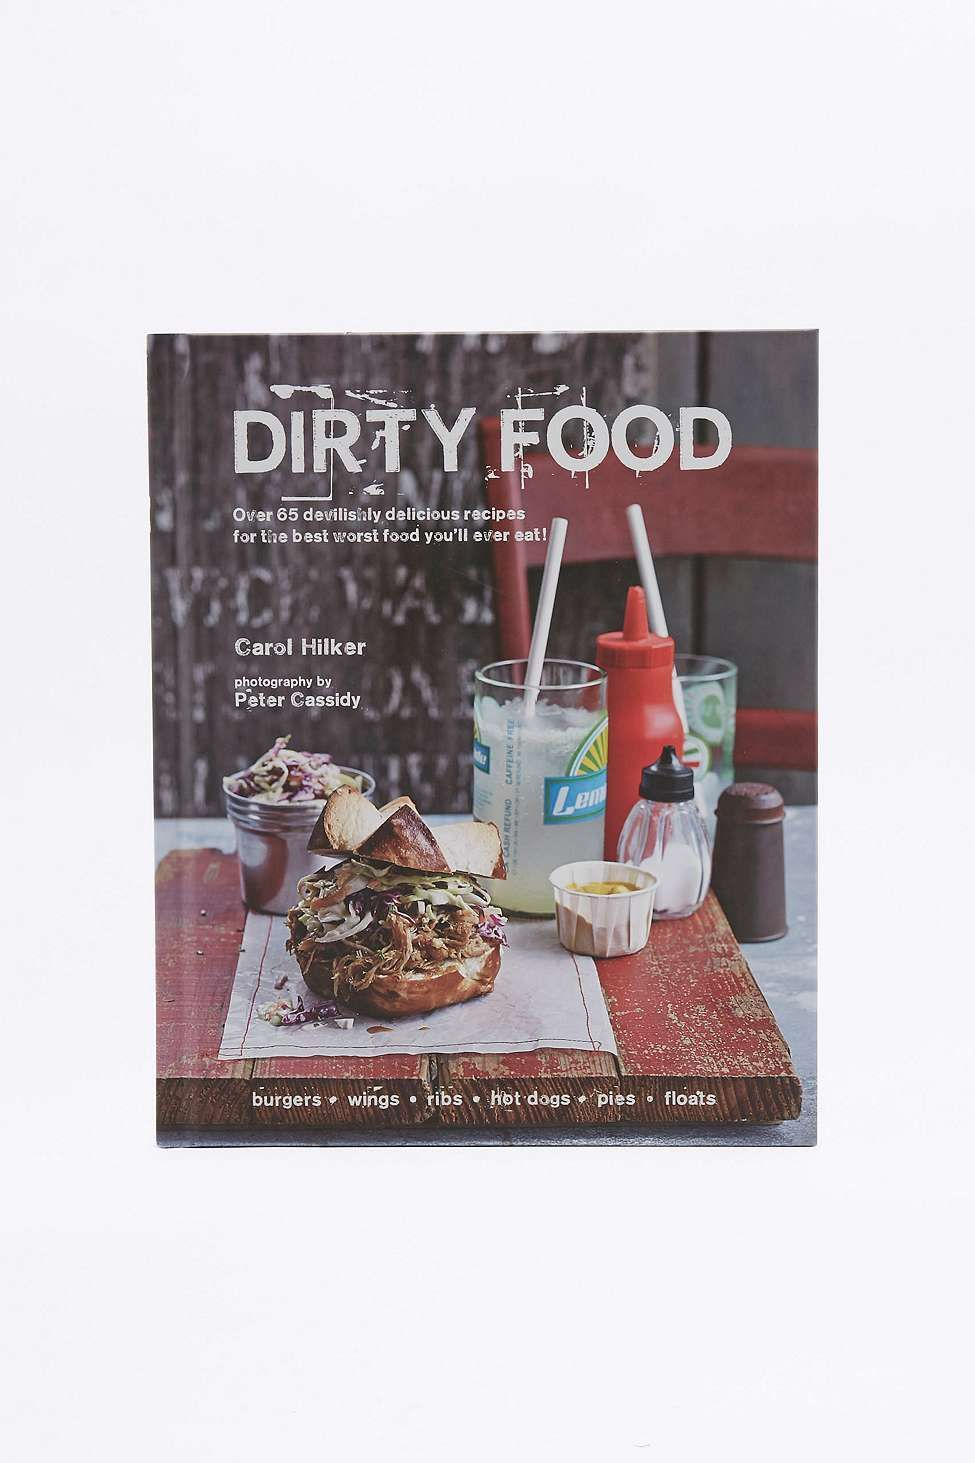 Dirty food over 65 devilishly delicious recipes for the best worst shop dirty food over 65 devilishly delicious recipes for the best worst food youll ever eat book at urban outfitters today forumfinder Image collections